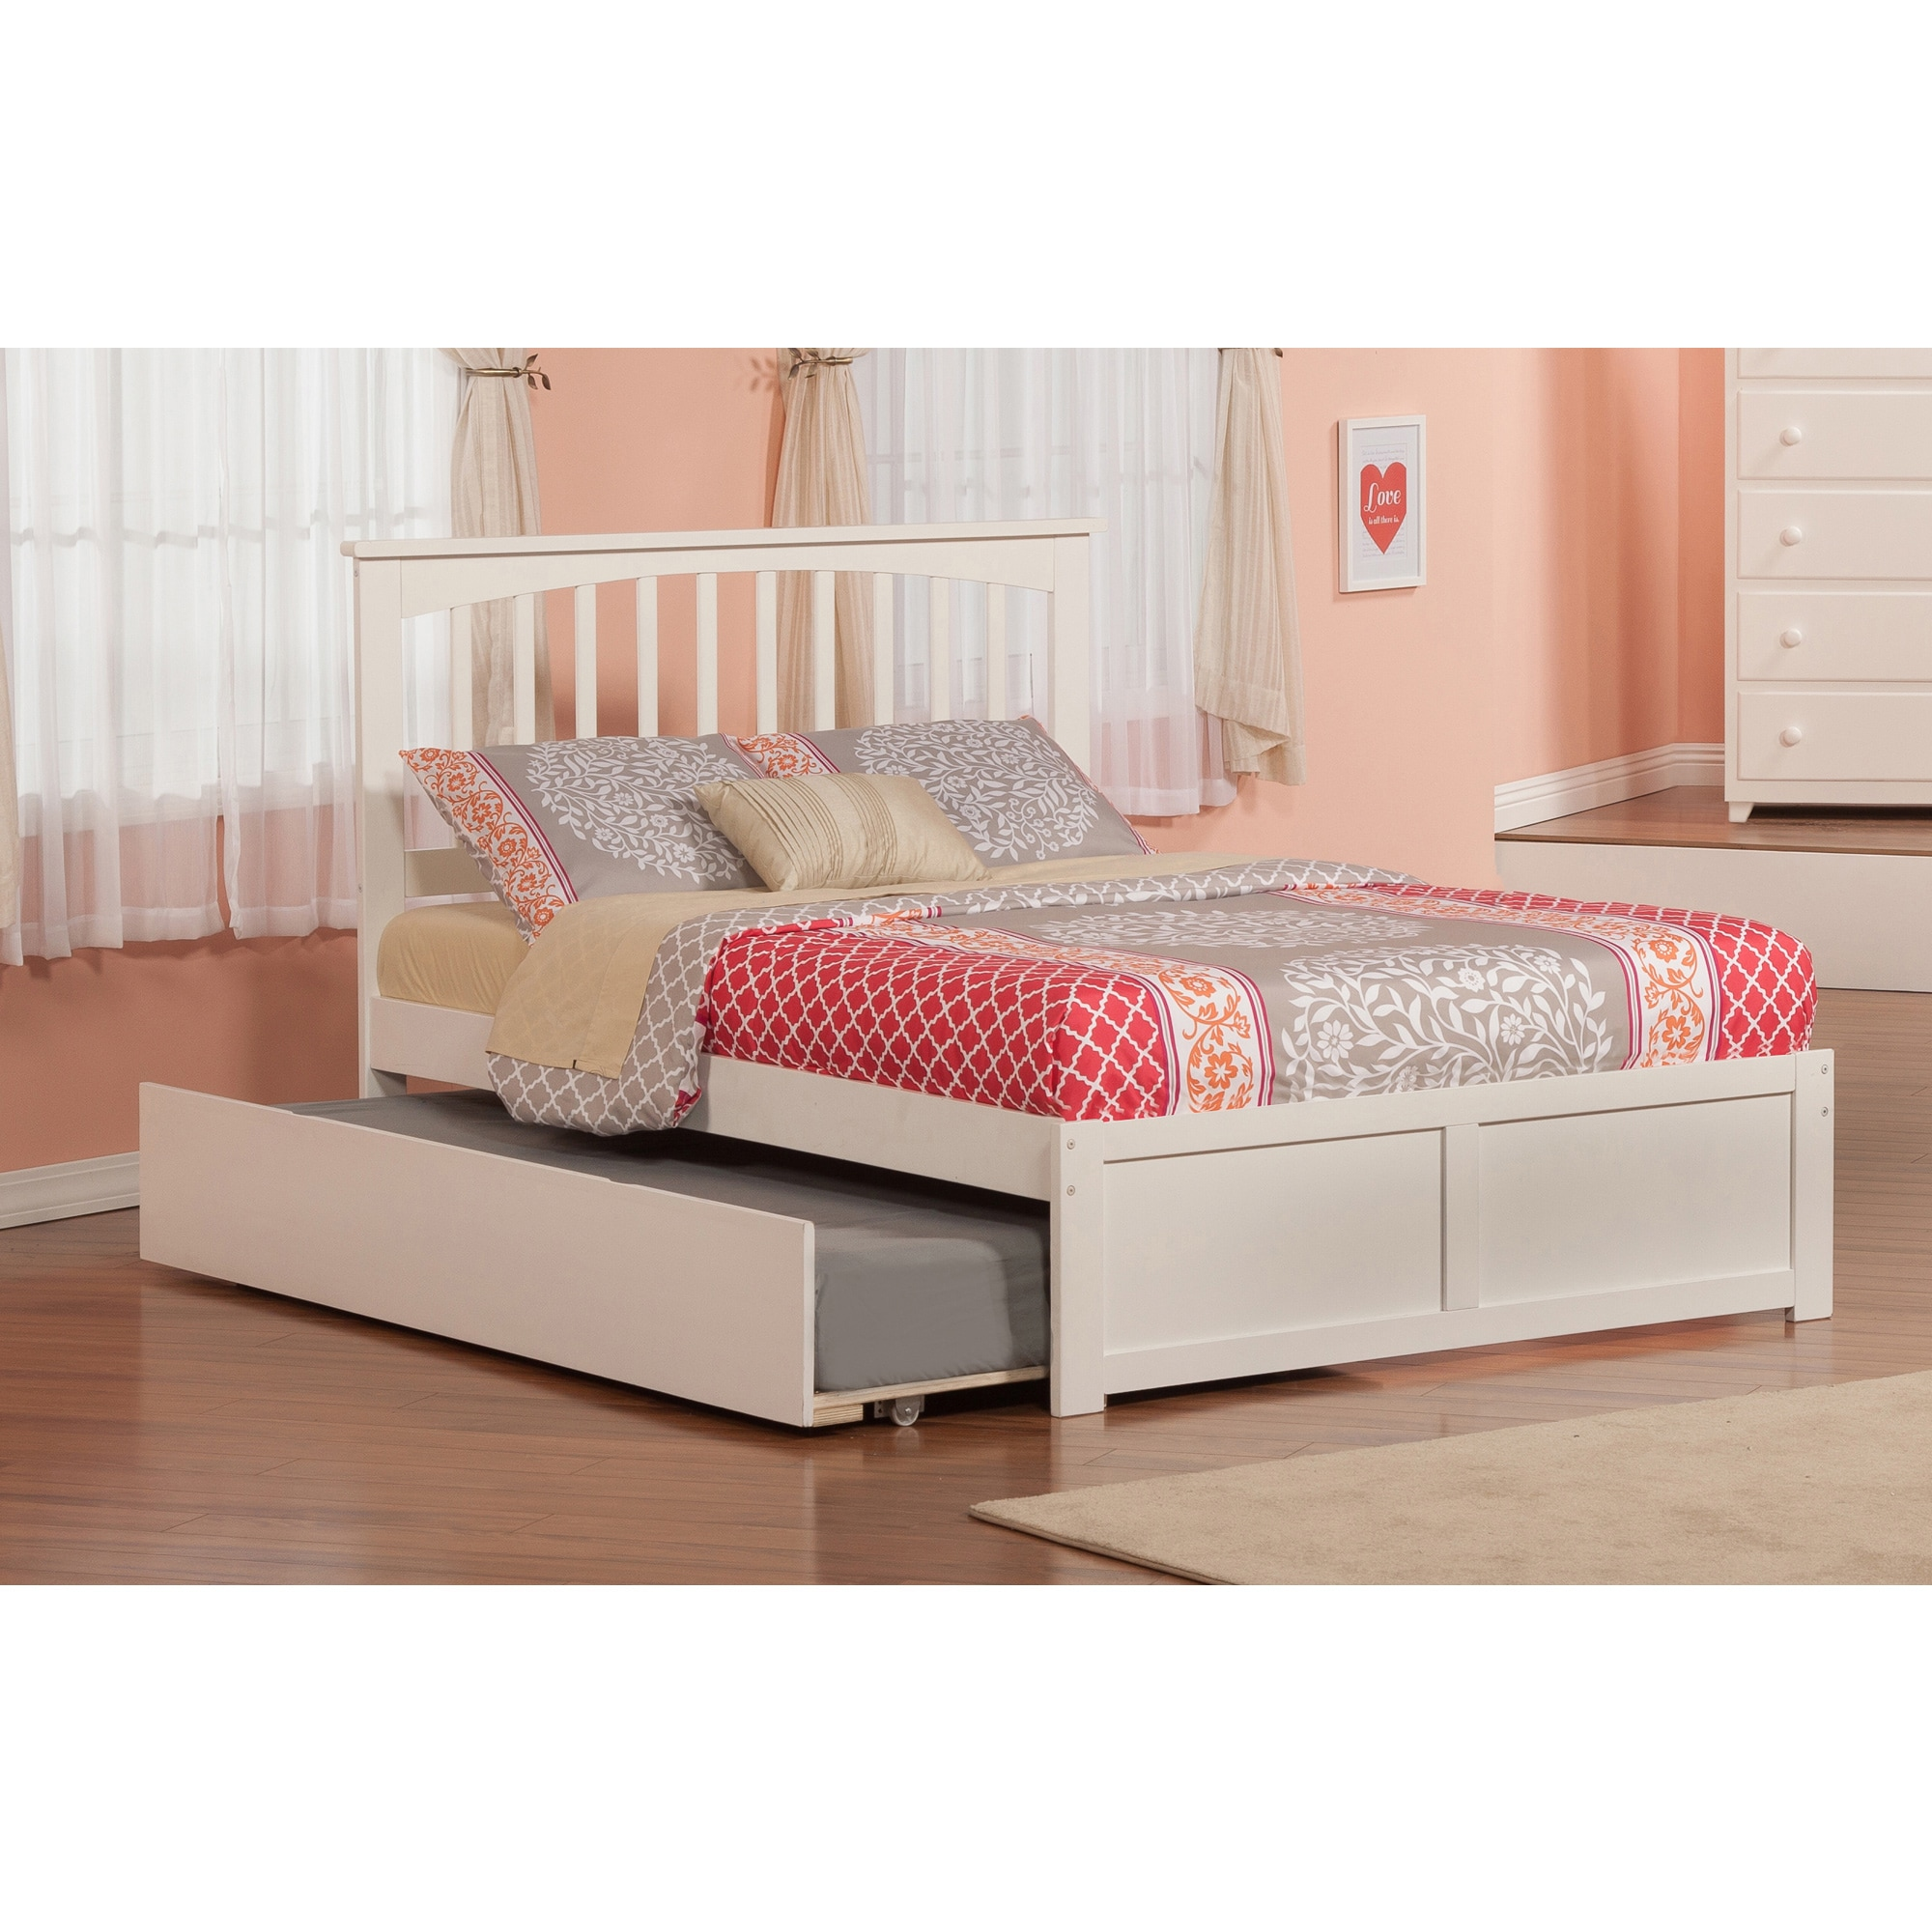 Atlantic Furniture Atlantic Mission White Wood Full Bed with Flat-panel Foot Board and Urban Trundle